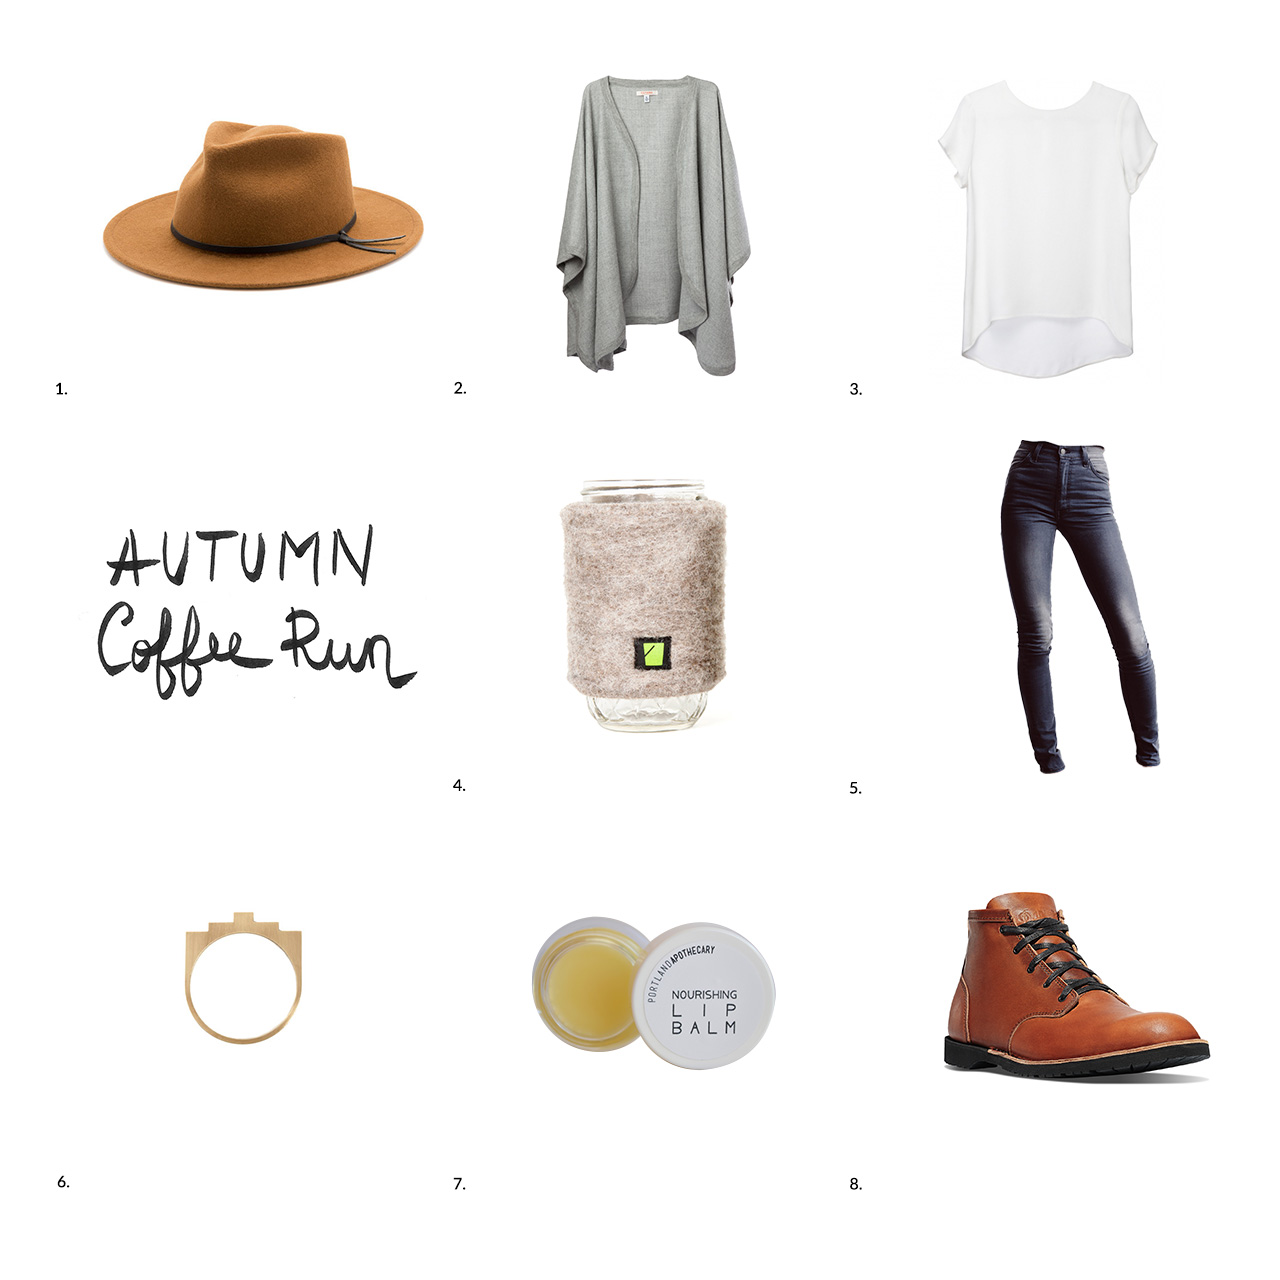 Autumn coffee run photo collage and calligraphy by Conscious by Chloé